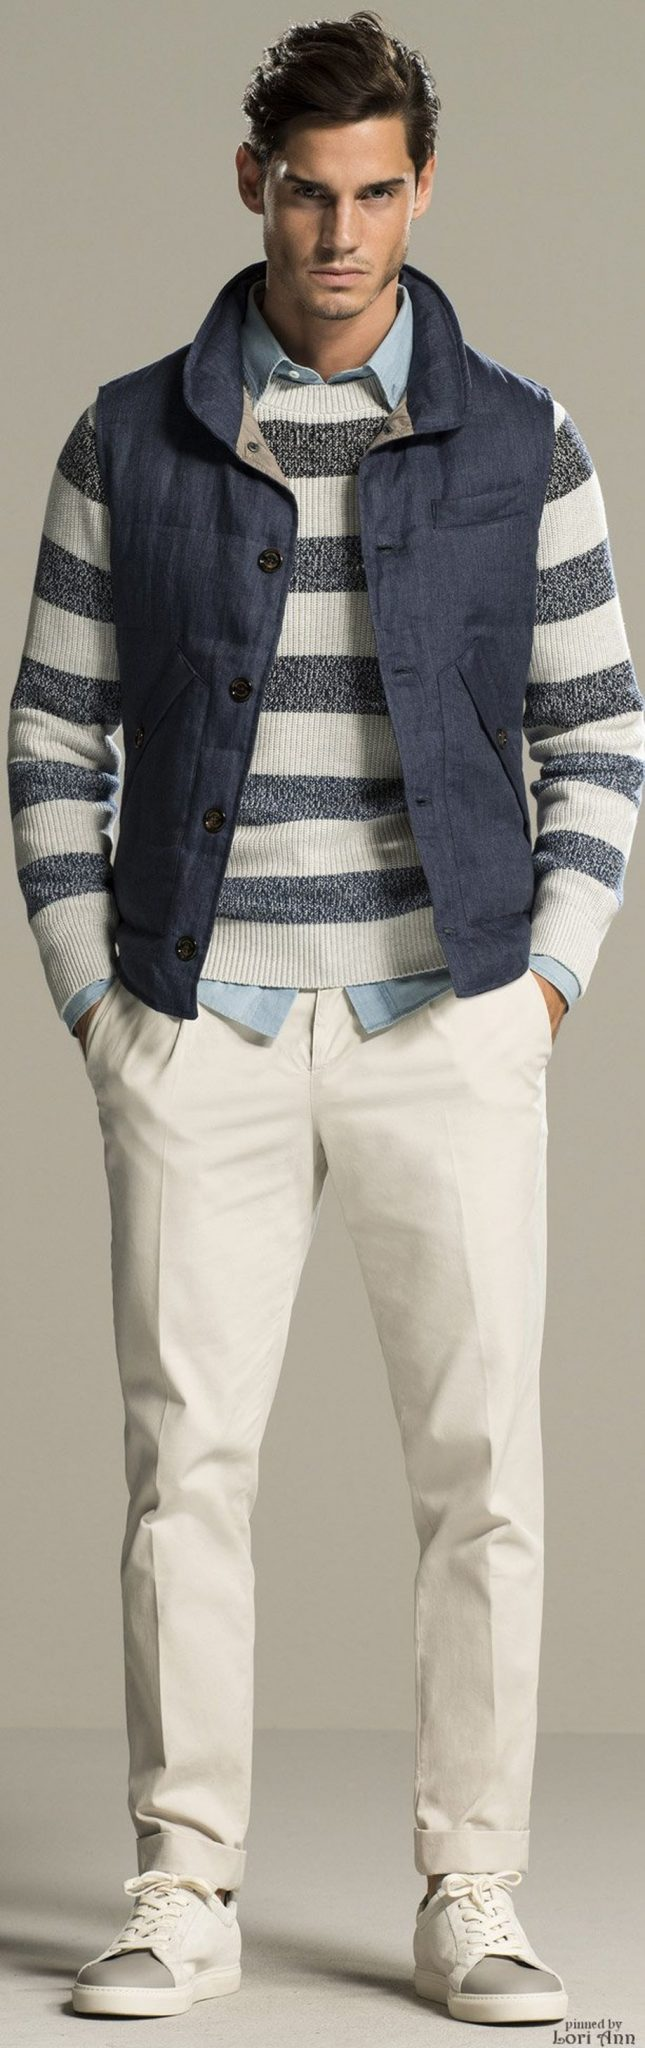 Inspiring Men's Spring Streetstyle Fashion Outfits 4